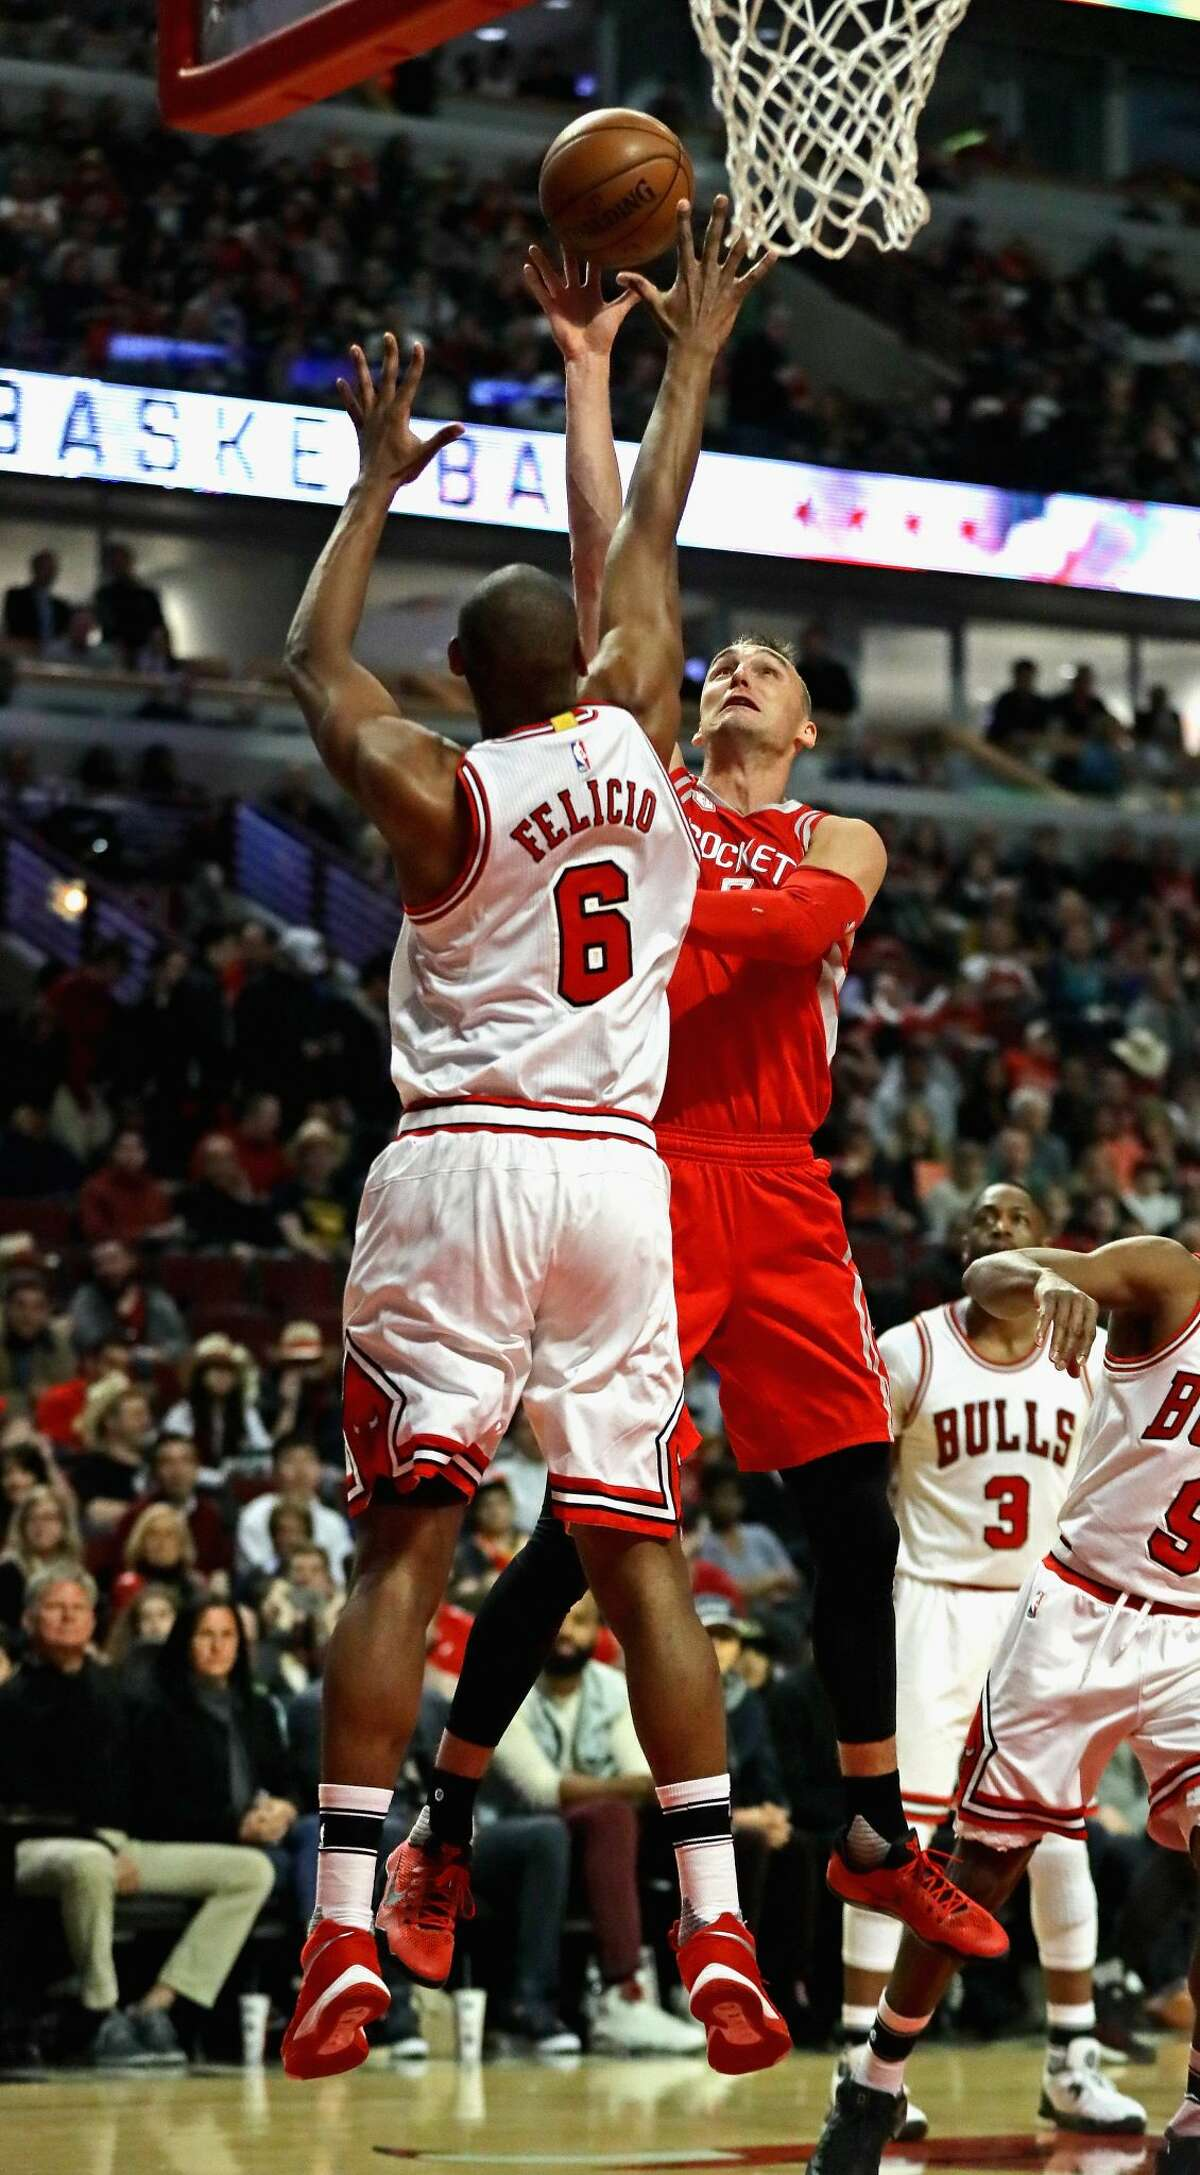 CHICAGO, IL - MARCH 10: Sam Dekker #7 of the Houston Rockets shoots against Cristiano Felicio #6 of the Chicago Bulls at the United Center on March 10, 2017 in Chicago, Illinois. NOTE TO USER: User expressly acknowledges and agrees that, by downloading and/or using this photograph, user is consenting to the terms and conditions of the Getty Images License Agreement. (Photo by Jonathan Daniel/Getty Images)